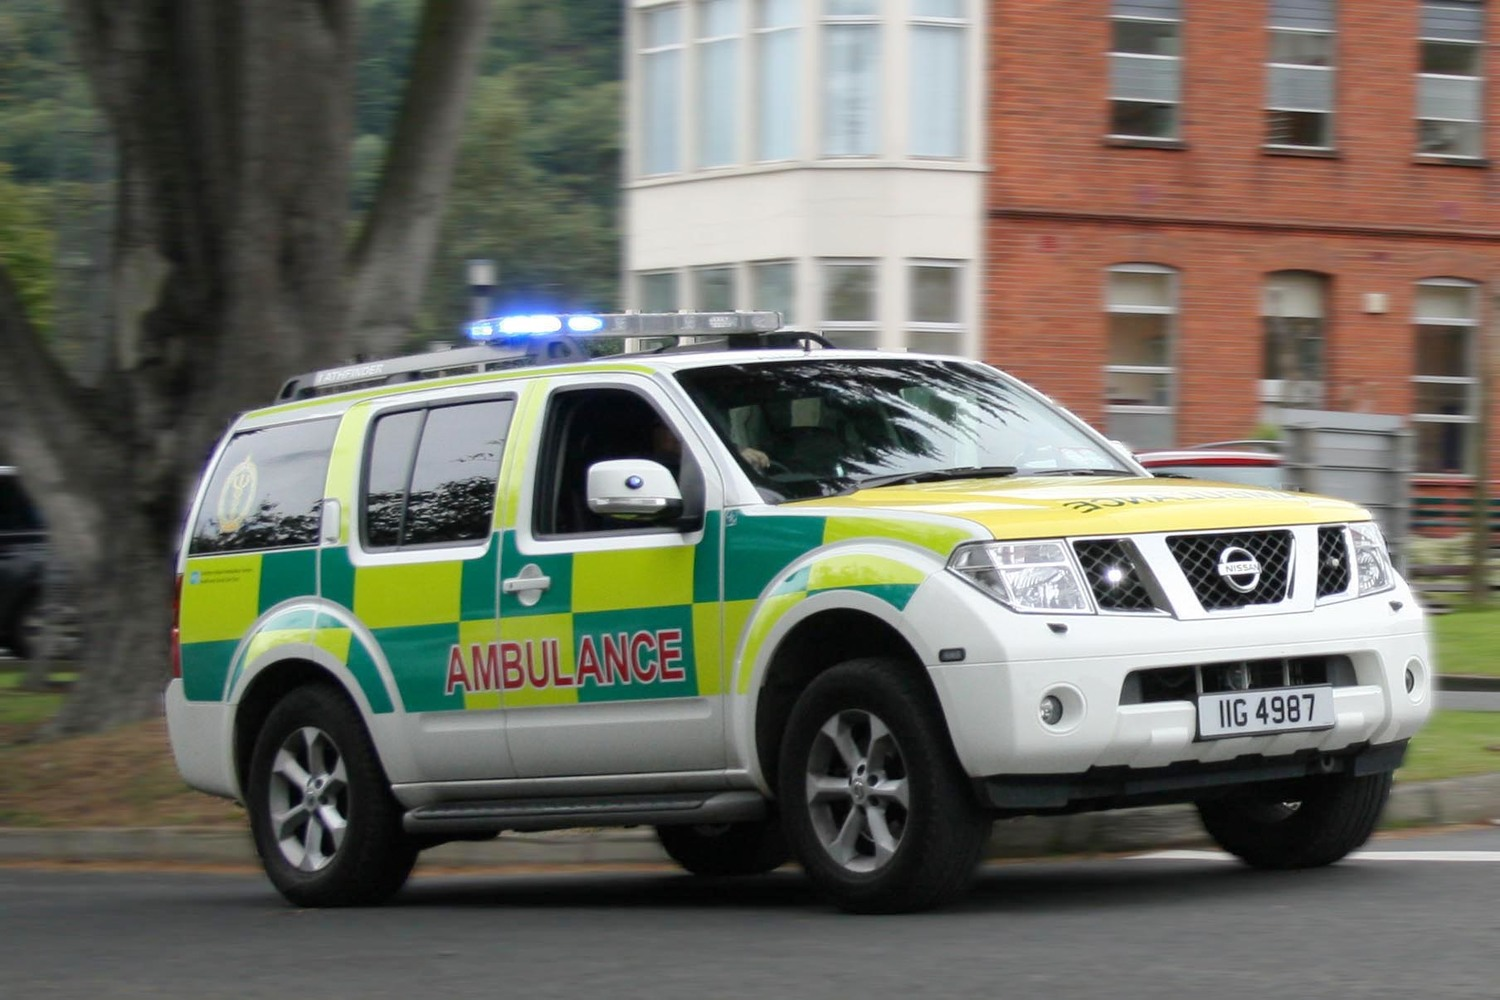 Northern Ireland invests less than 10p per person per day in the ambulance service